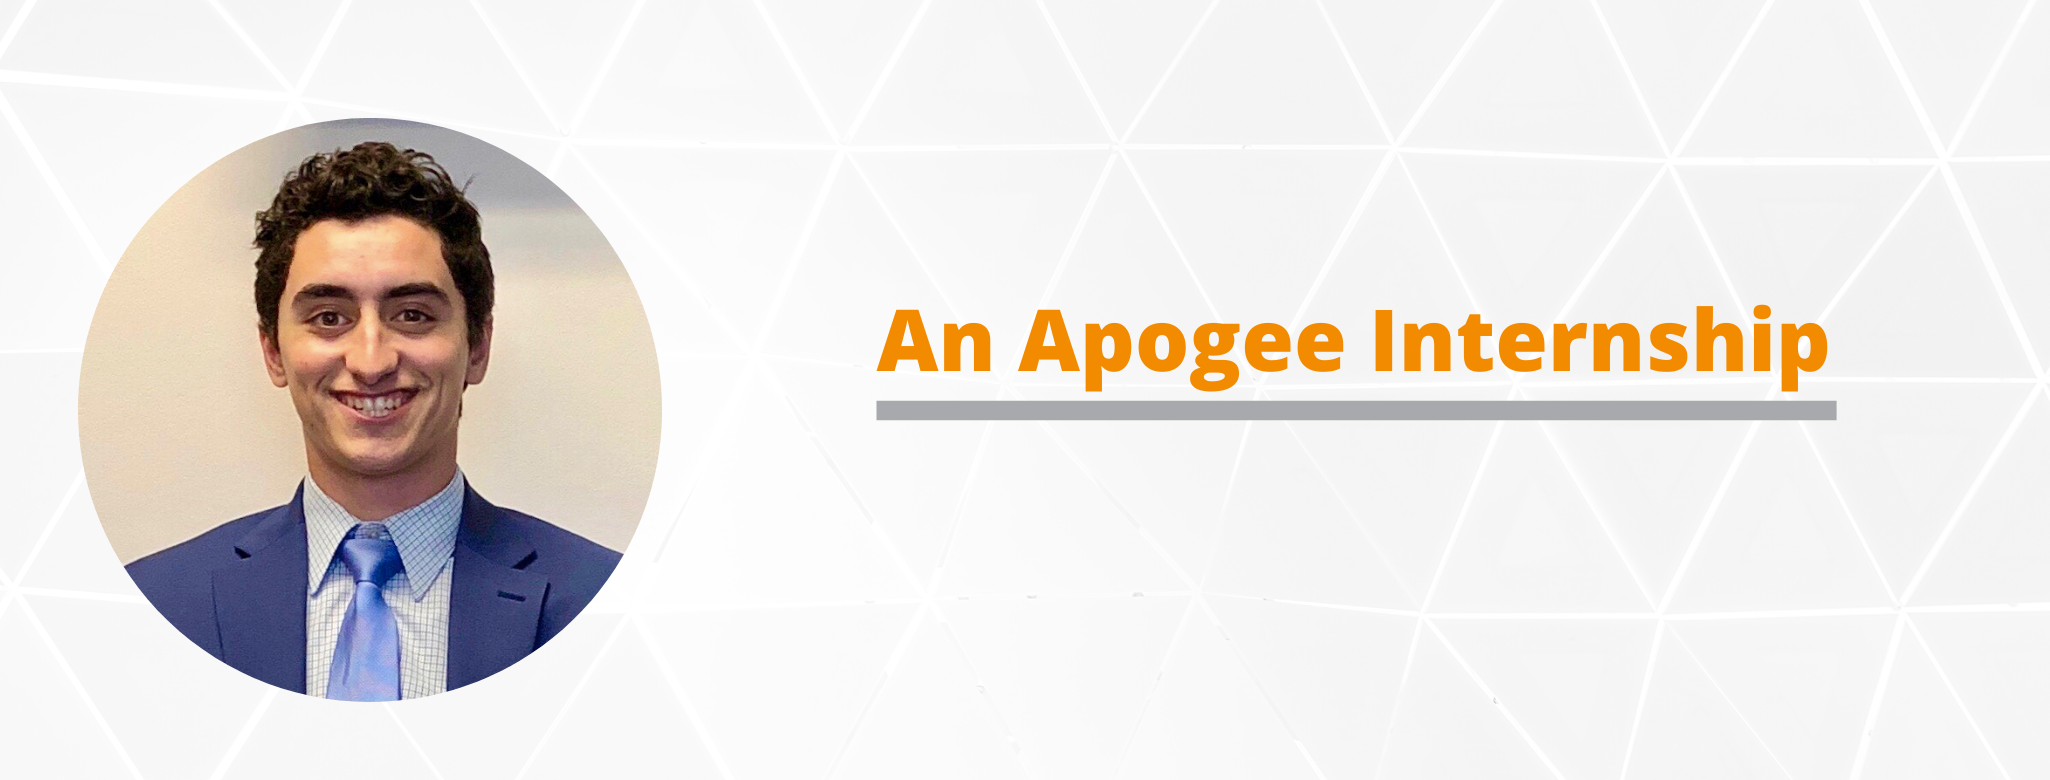 An Apogee Internship-2